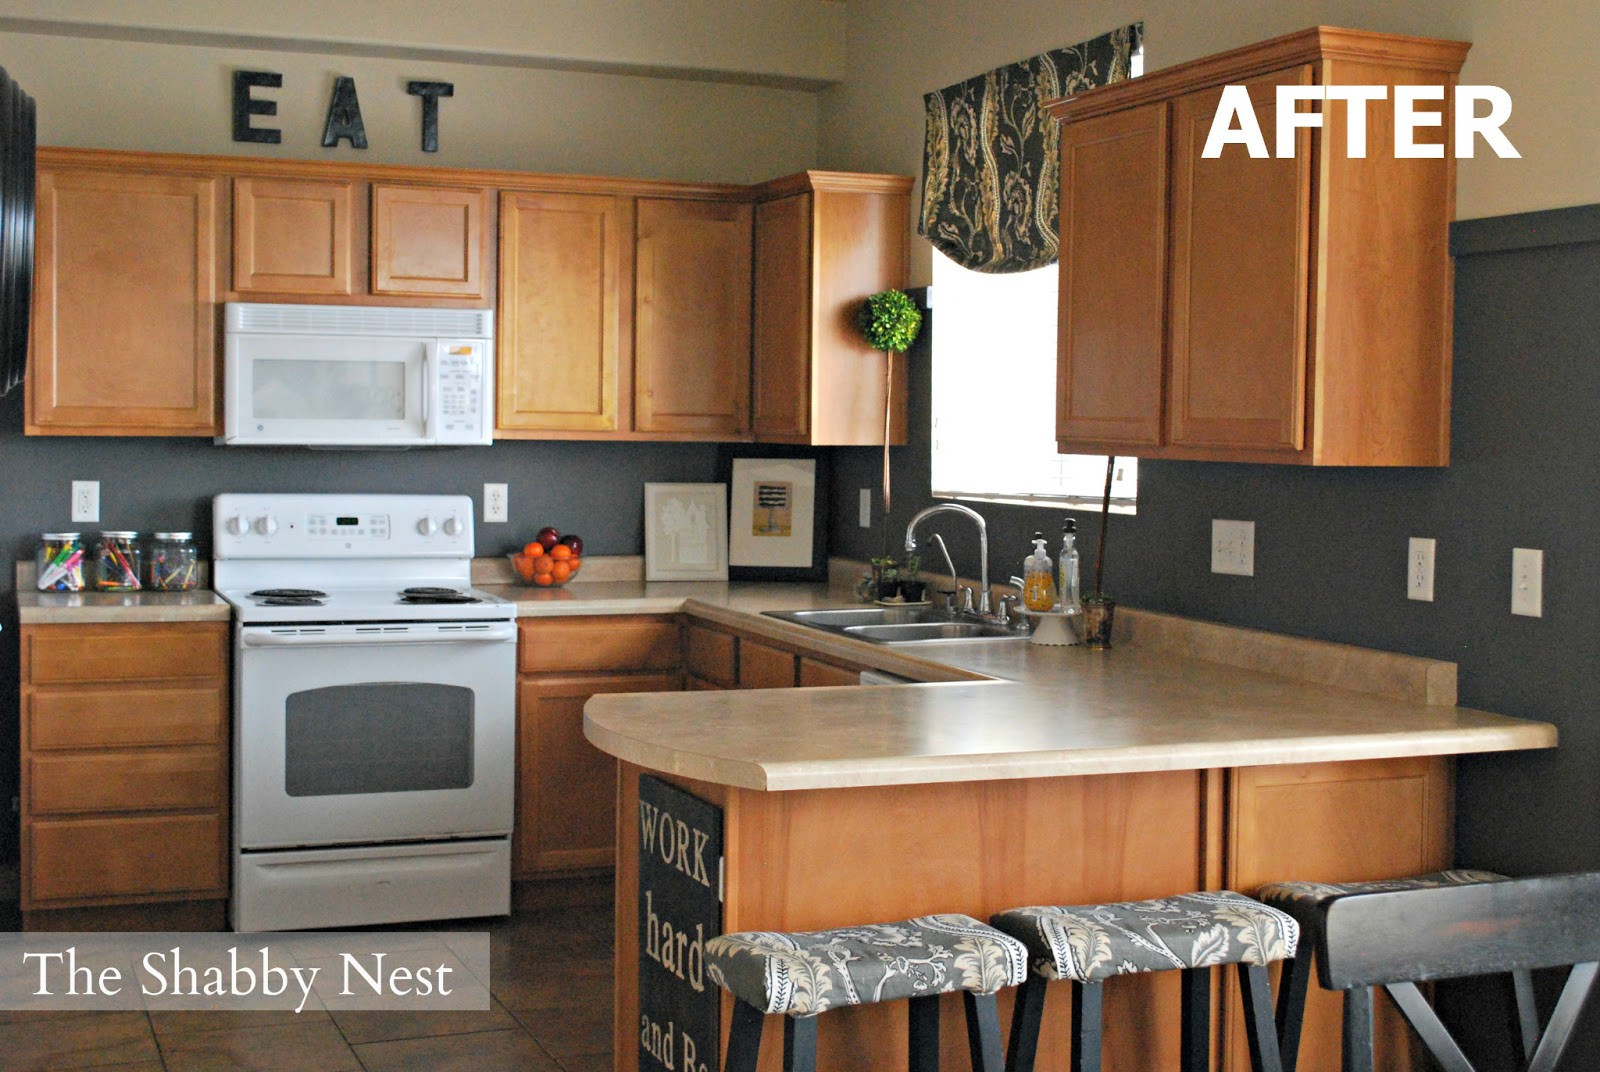 The Shabby Nest E A T How I Created A Kitchen Focal